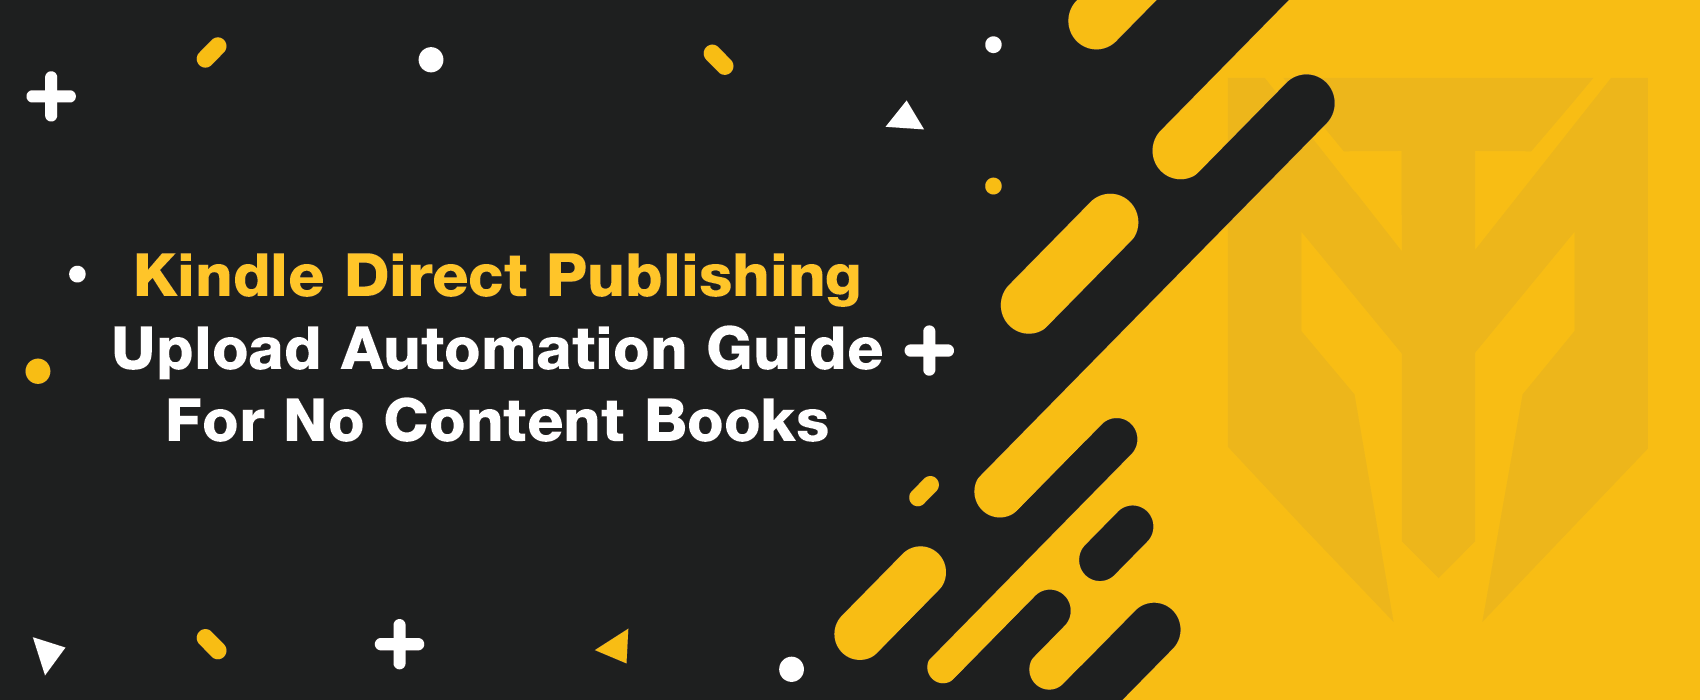 Kindle Direct Publishing Upload Automation Guide for No Content Books